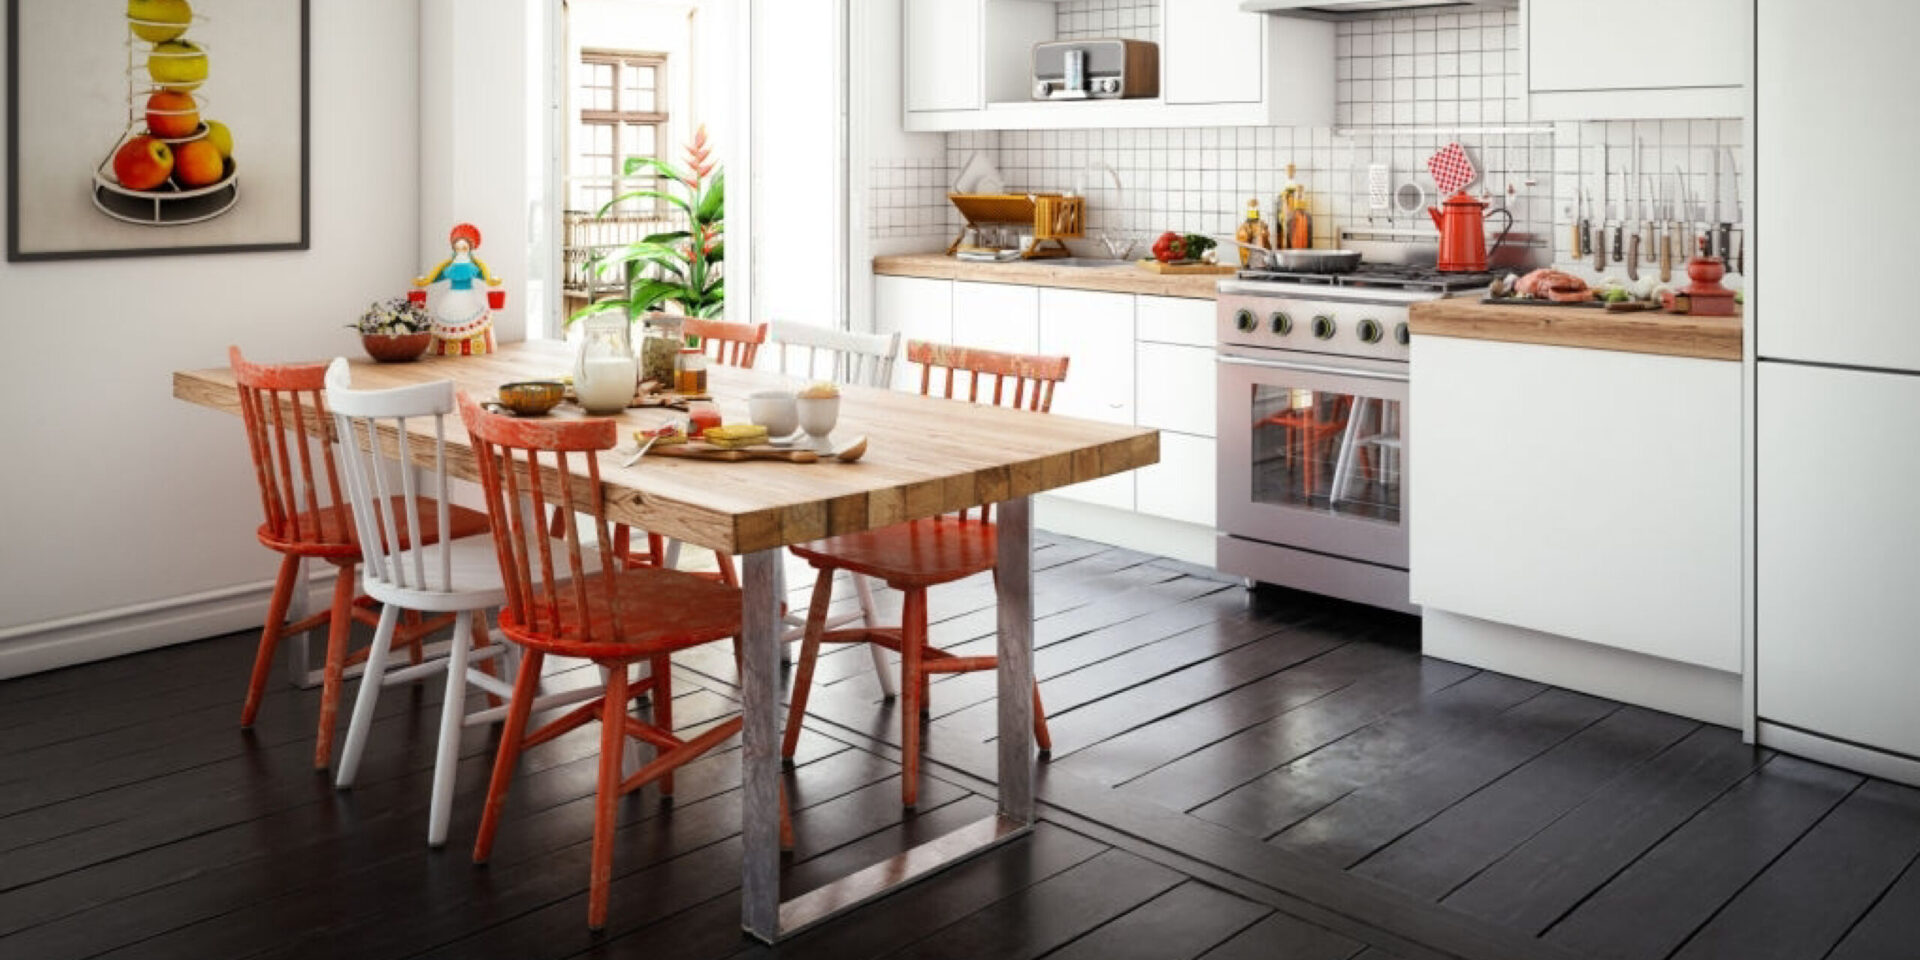 Top 5 Best Paint For Kitchen Chairs In 2021